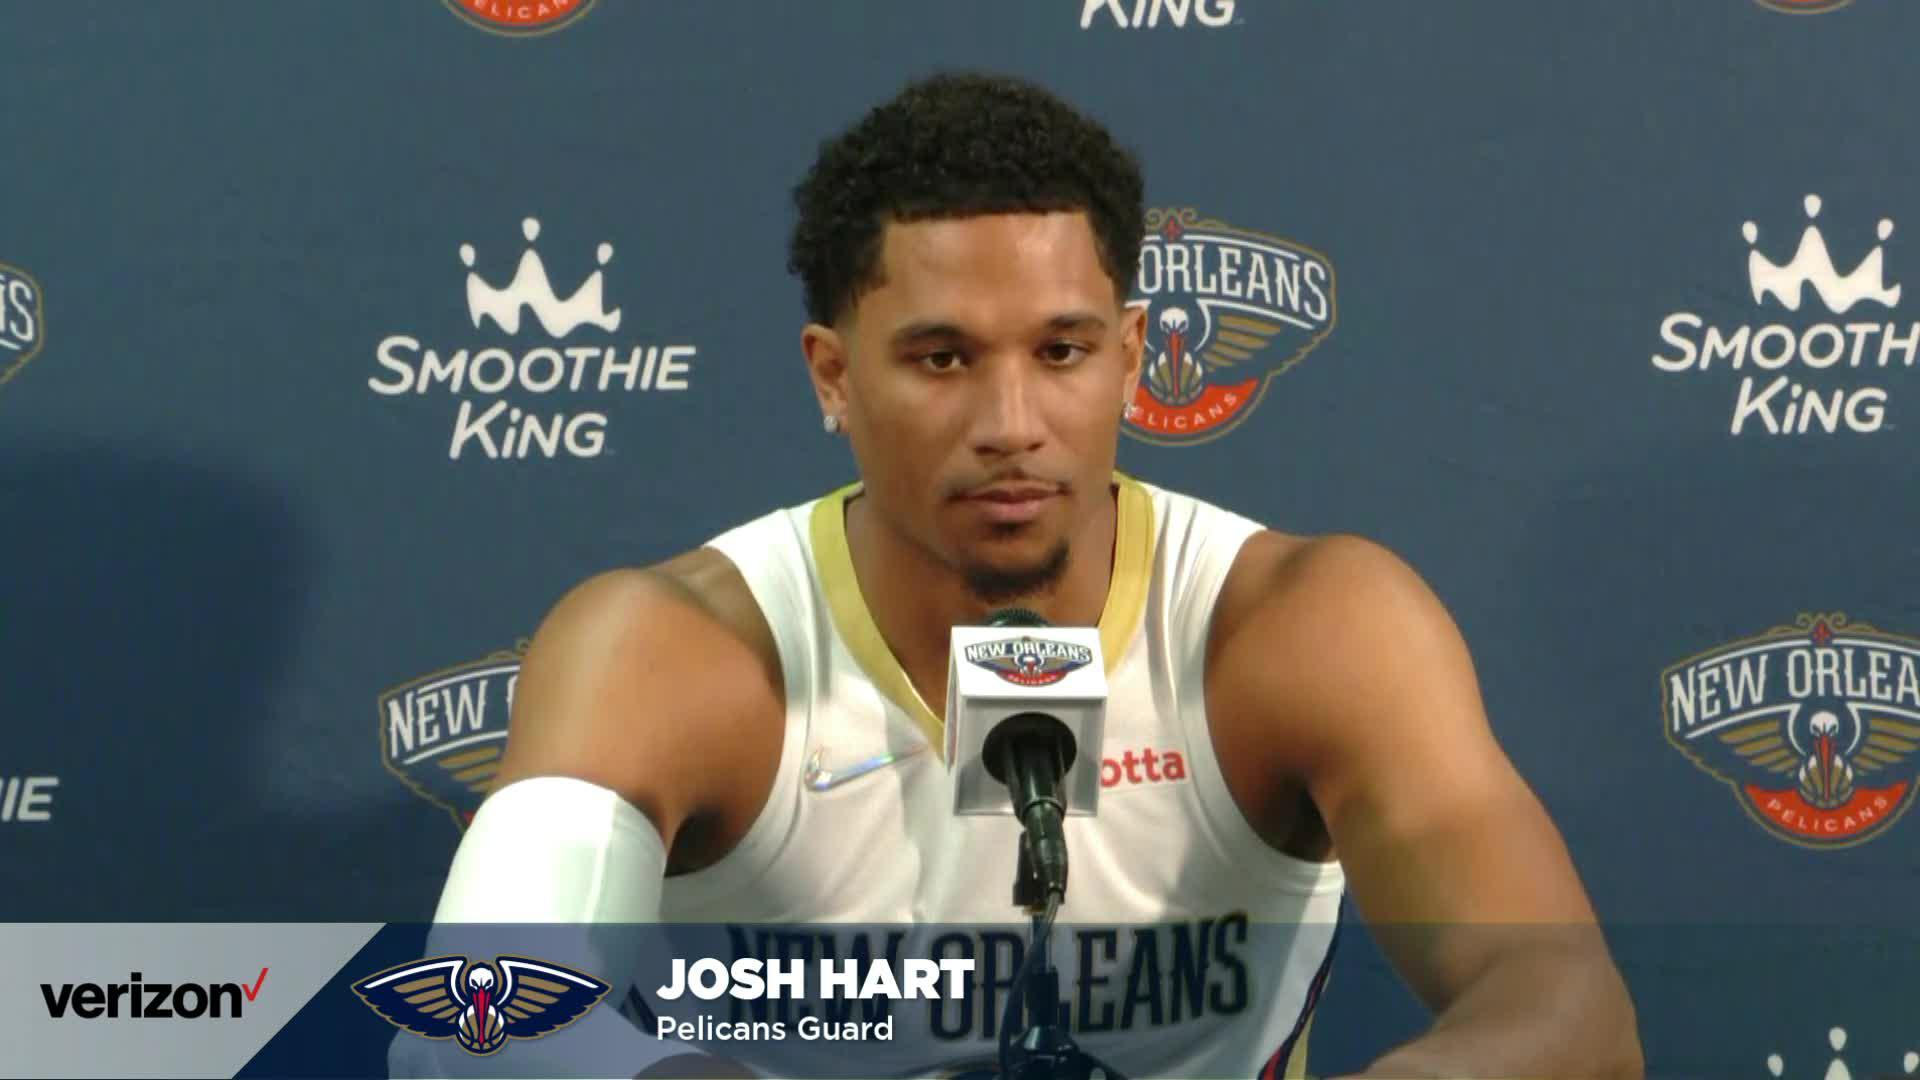 Josh Hart on Willie Green, rejoining New Orleans after free agency | Pelicans Media Day 2021 Interviews